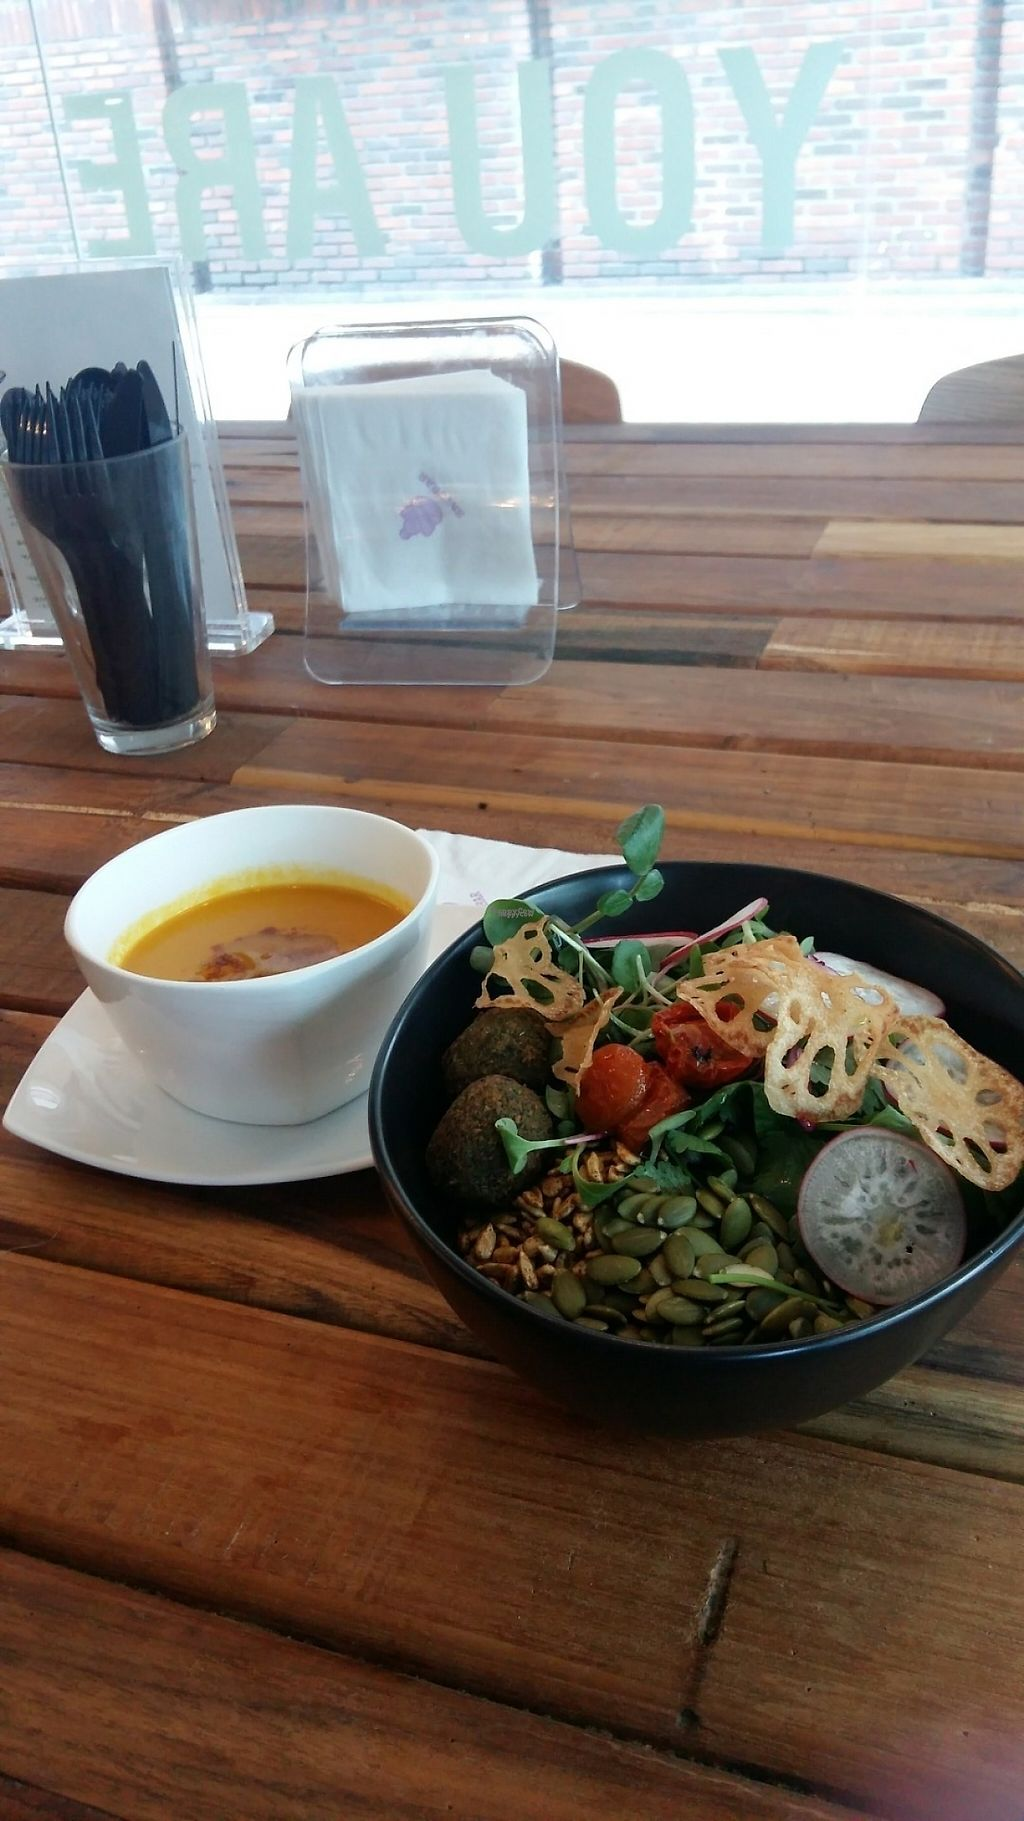 """Photo of CLOSED: Sattbar - 사뜨바  by <a href=""""/members/profile/snowbunnykitchen"""">snowbunnykitchen</a> <br/>Carrot soup & buddha bowl  <br/> April 8, 2017  - <a href='/contact/abuse/image/66958/245679'>Report</a>"""